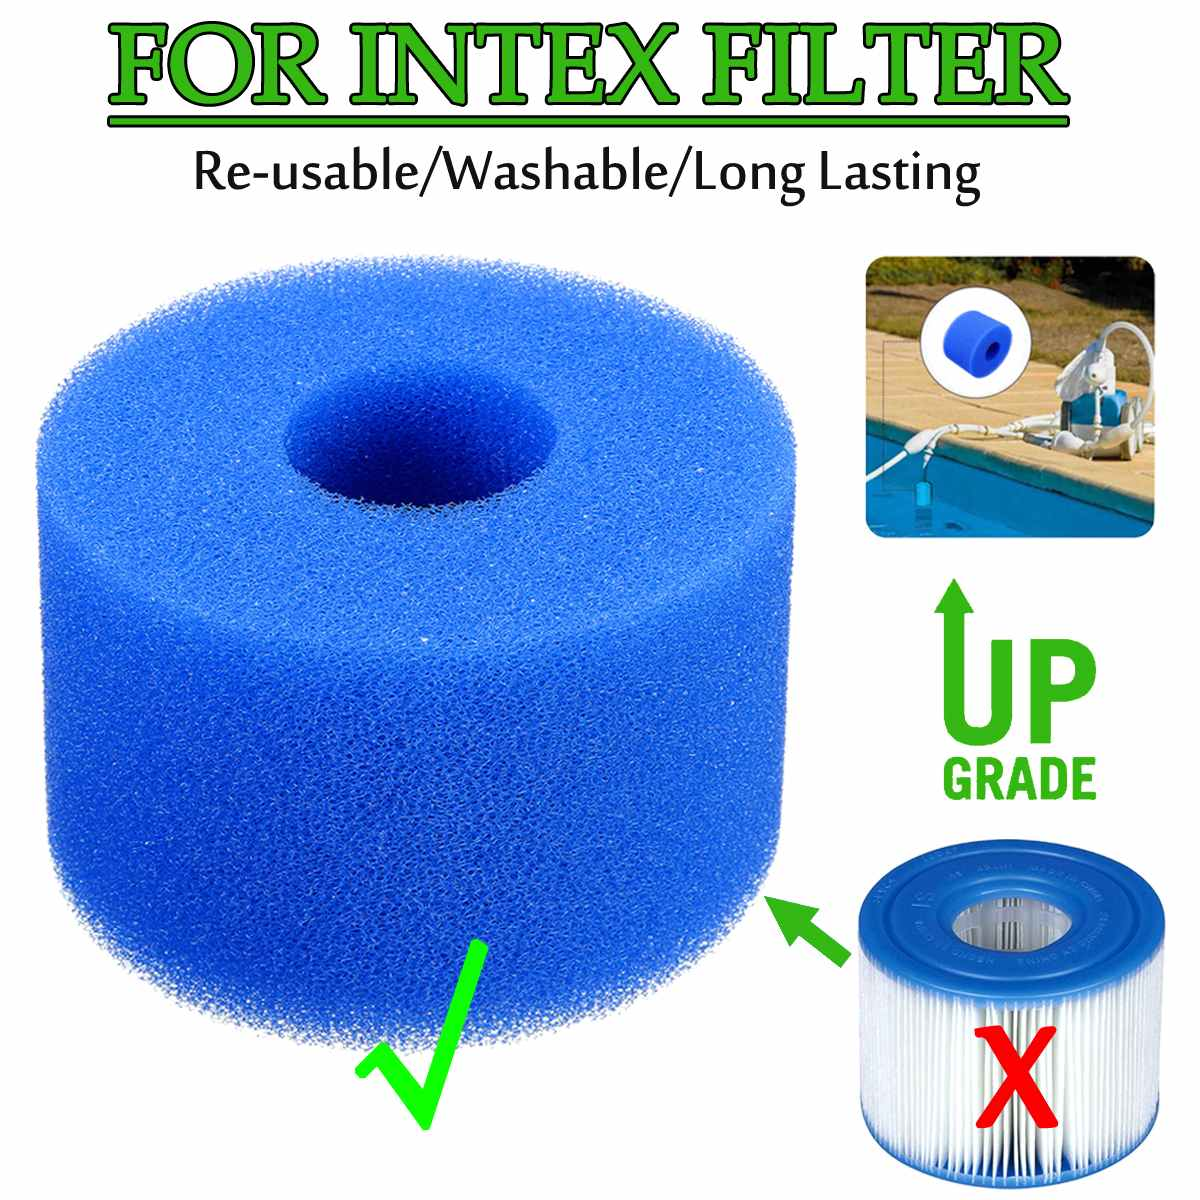 Swimming Pool Filter Foam Reusable Washable Sponge Cartridge Foam Suitable Bubble Jetted Pure SPA For Intex S1 Type Pool Filter(China)